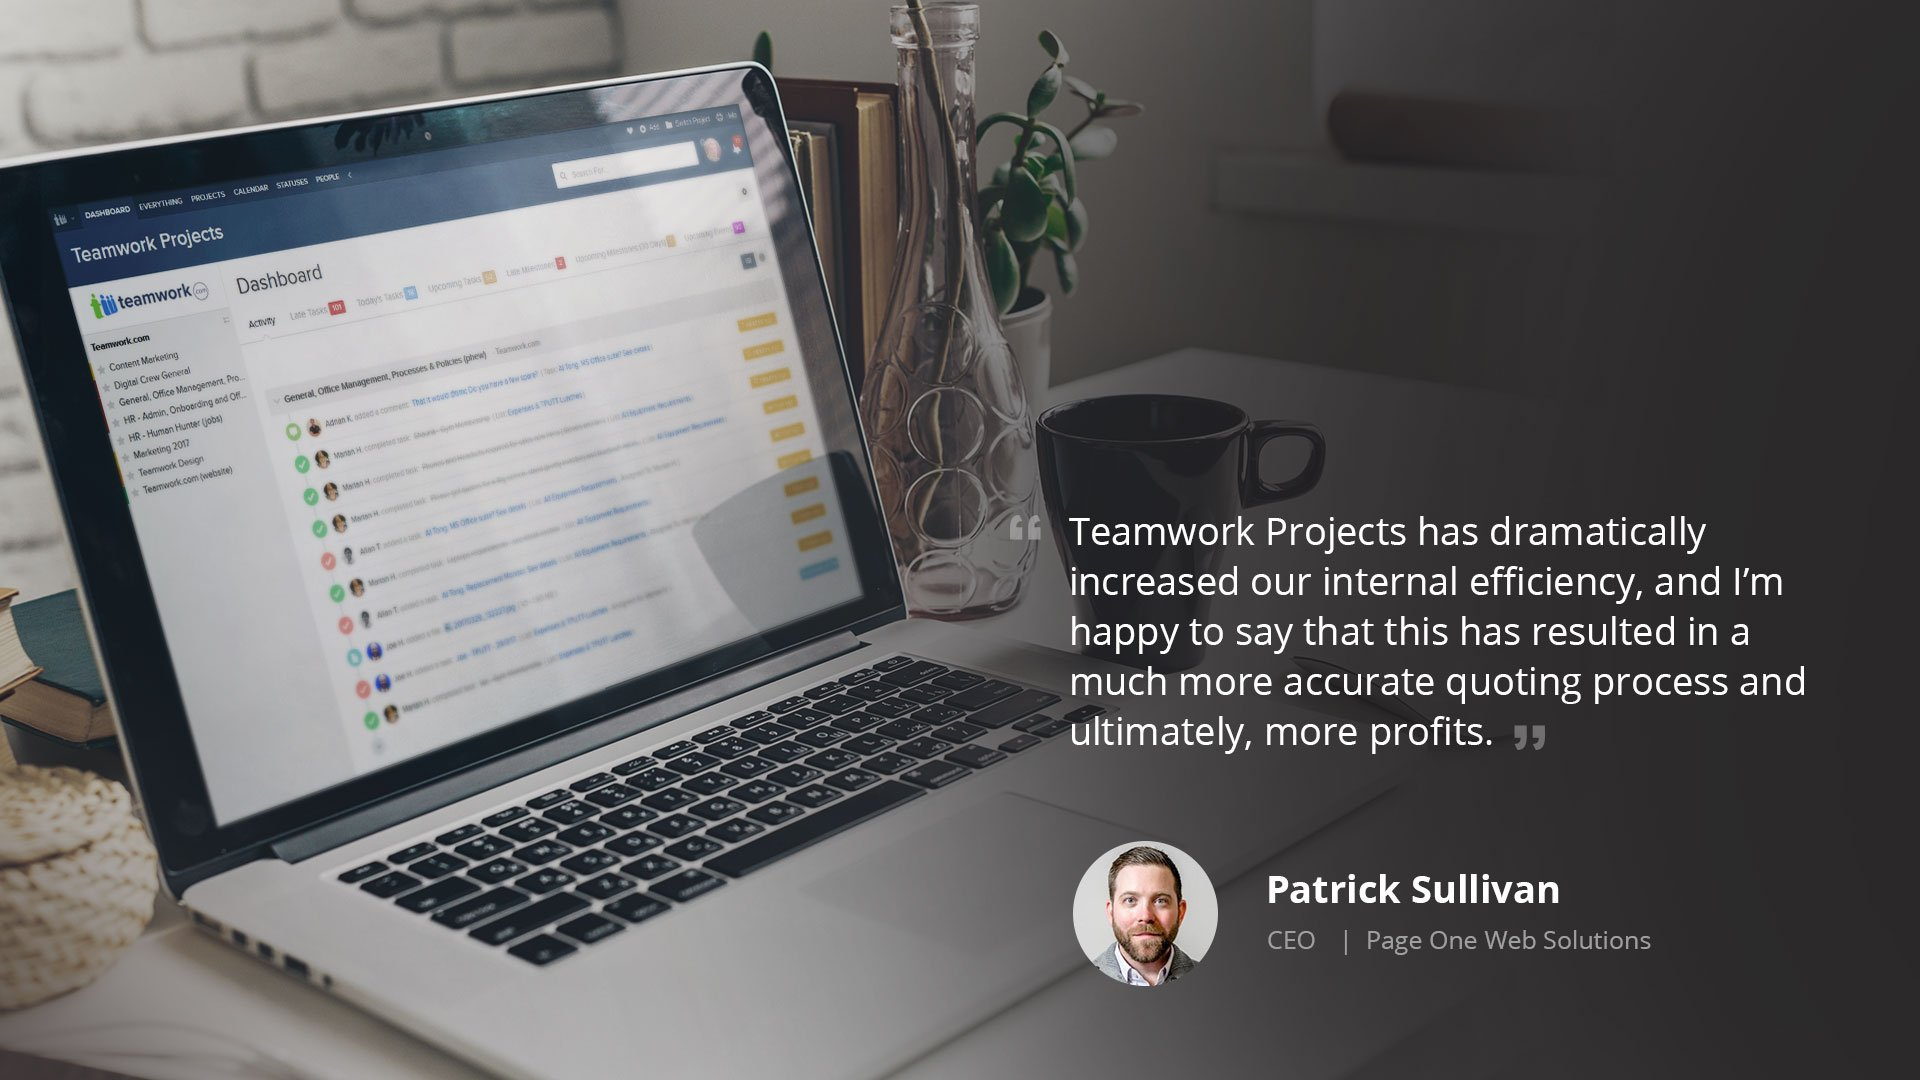 Using Teamwork Projects to Improve Time Management & Maximize Profitability